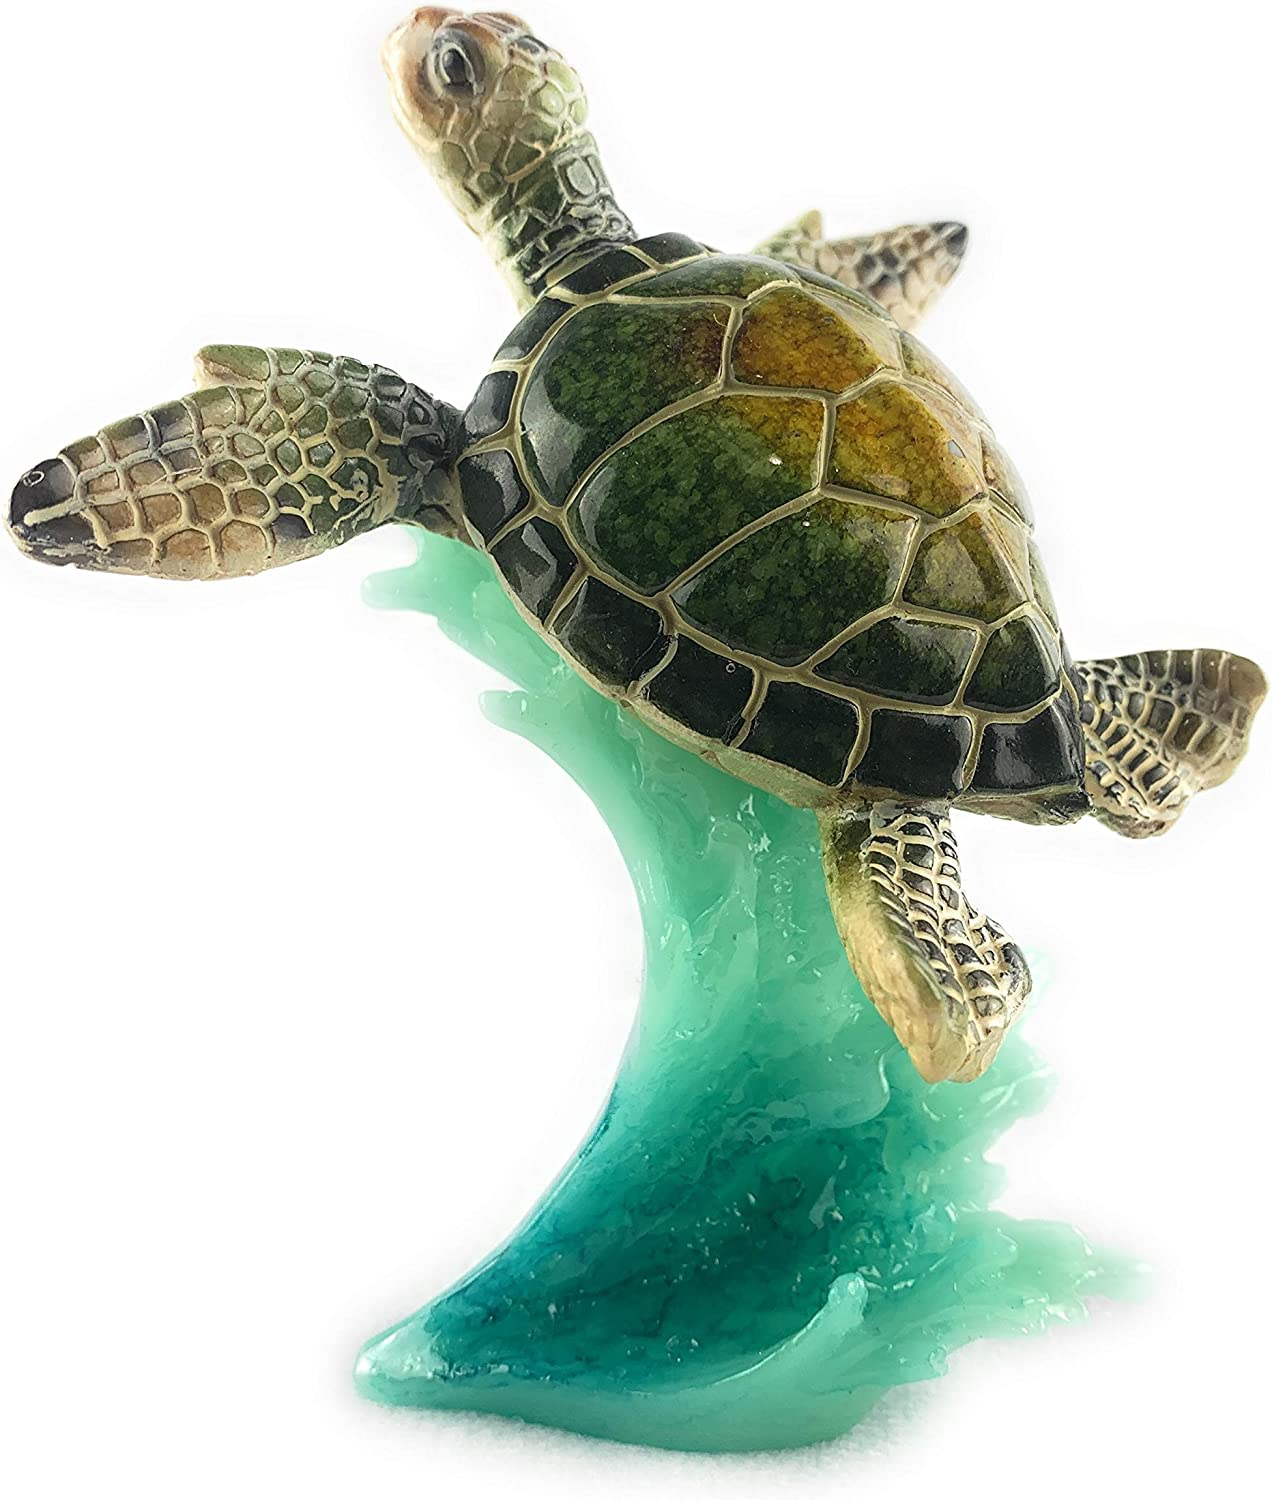 Aint It Nice Sea Turtle Green On Wave Marine Ocean Life Beach Themed Gift Decor Statue Figurine Collectible, 5 X 4.5 X 3 inches